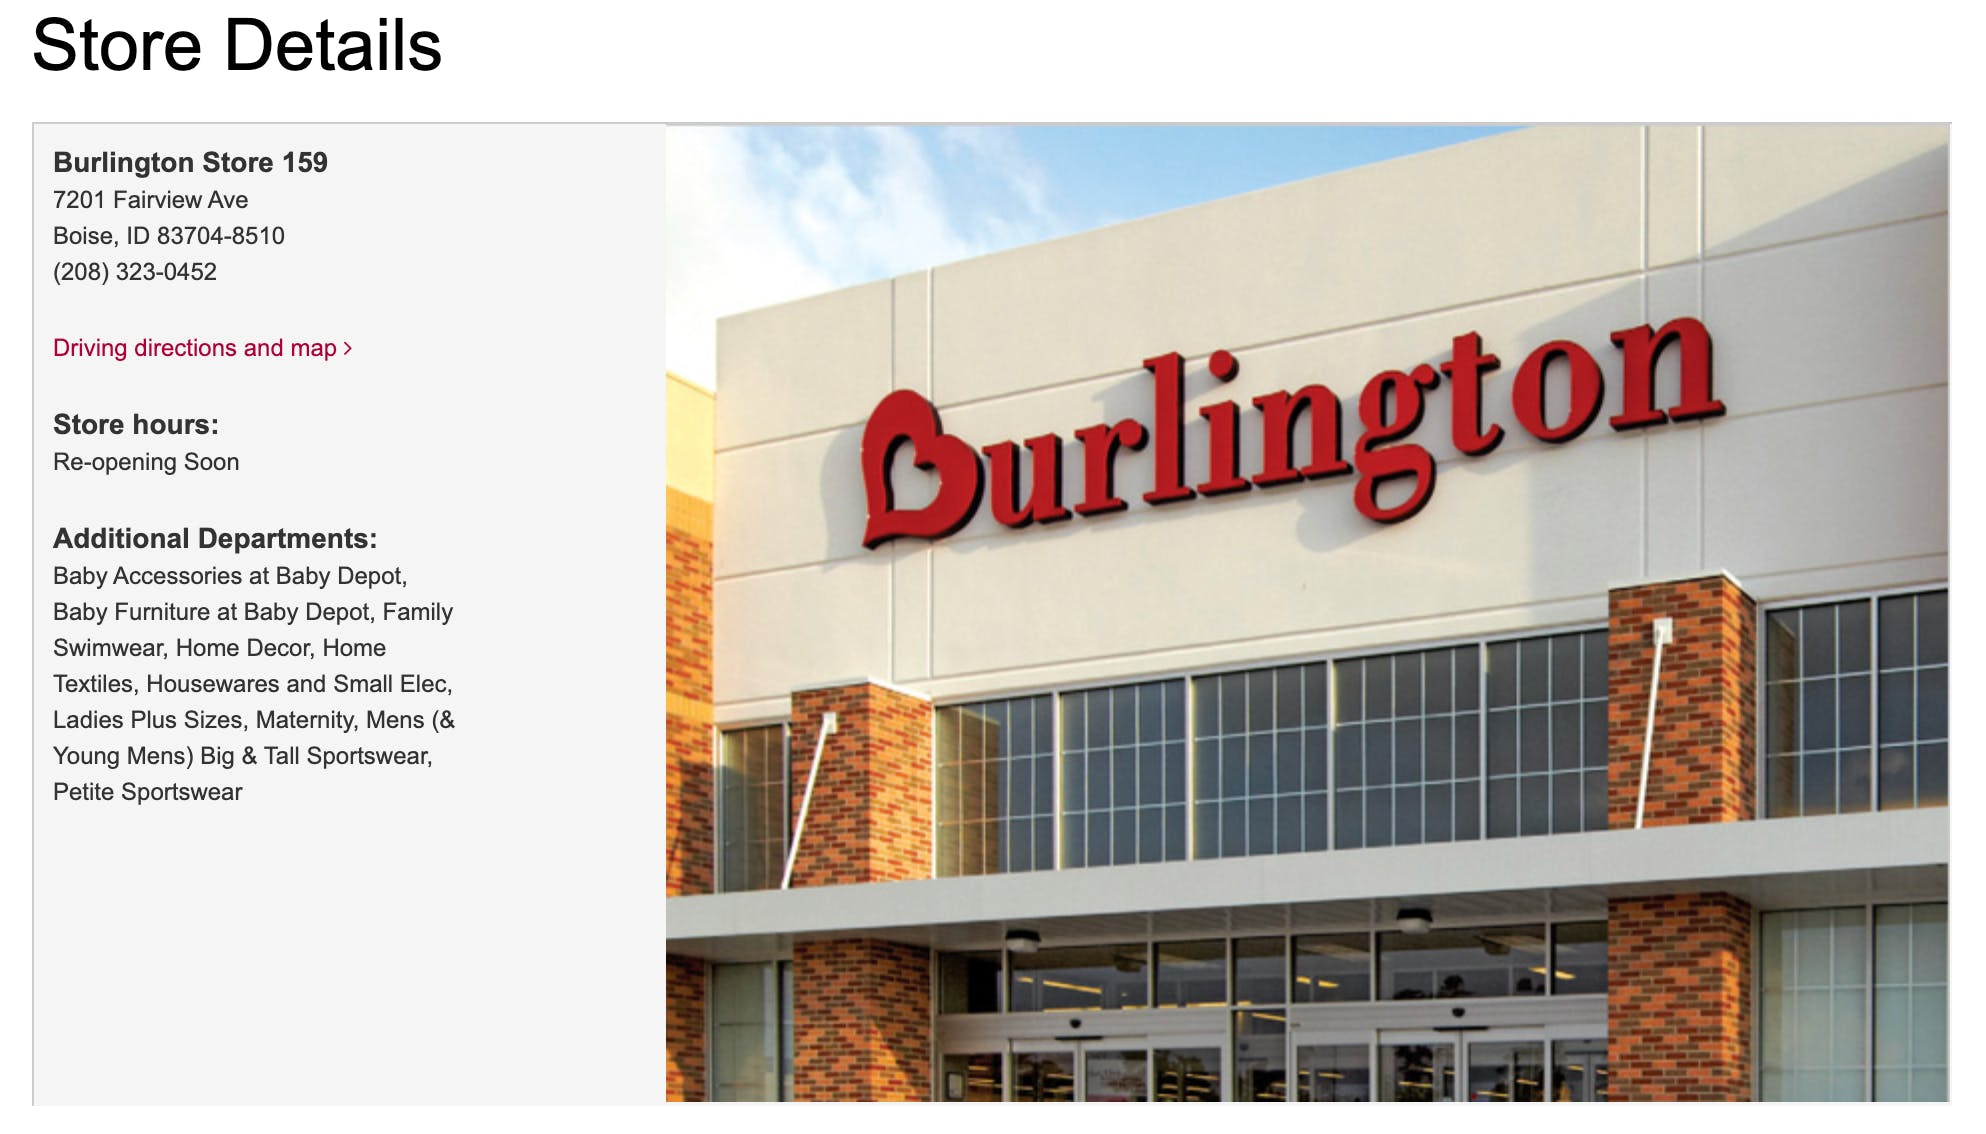 burlington reopens with historic storewide sale the krazy coupon lady burlington reopens with historic